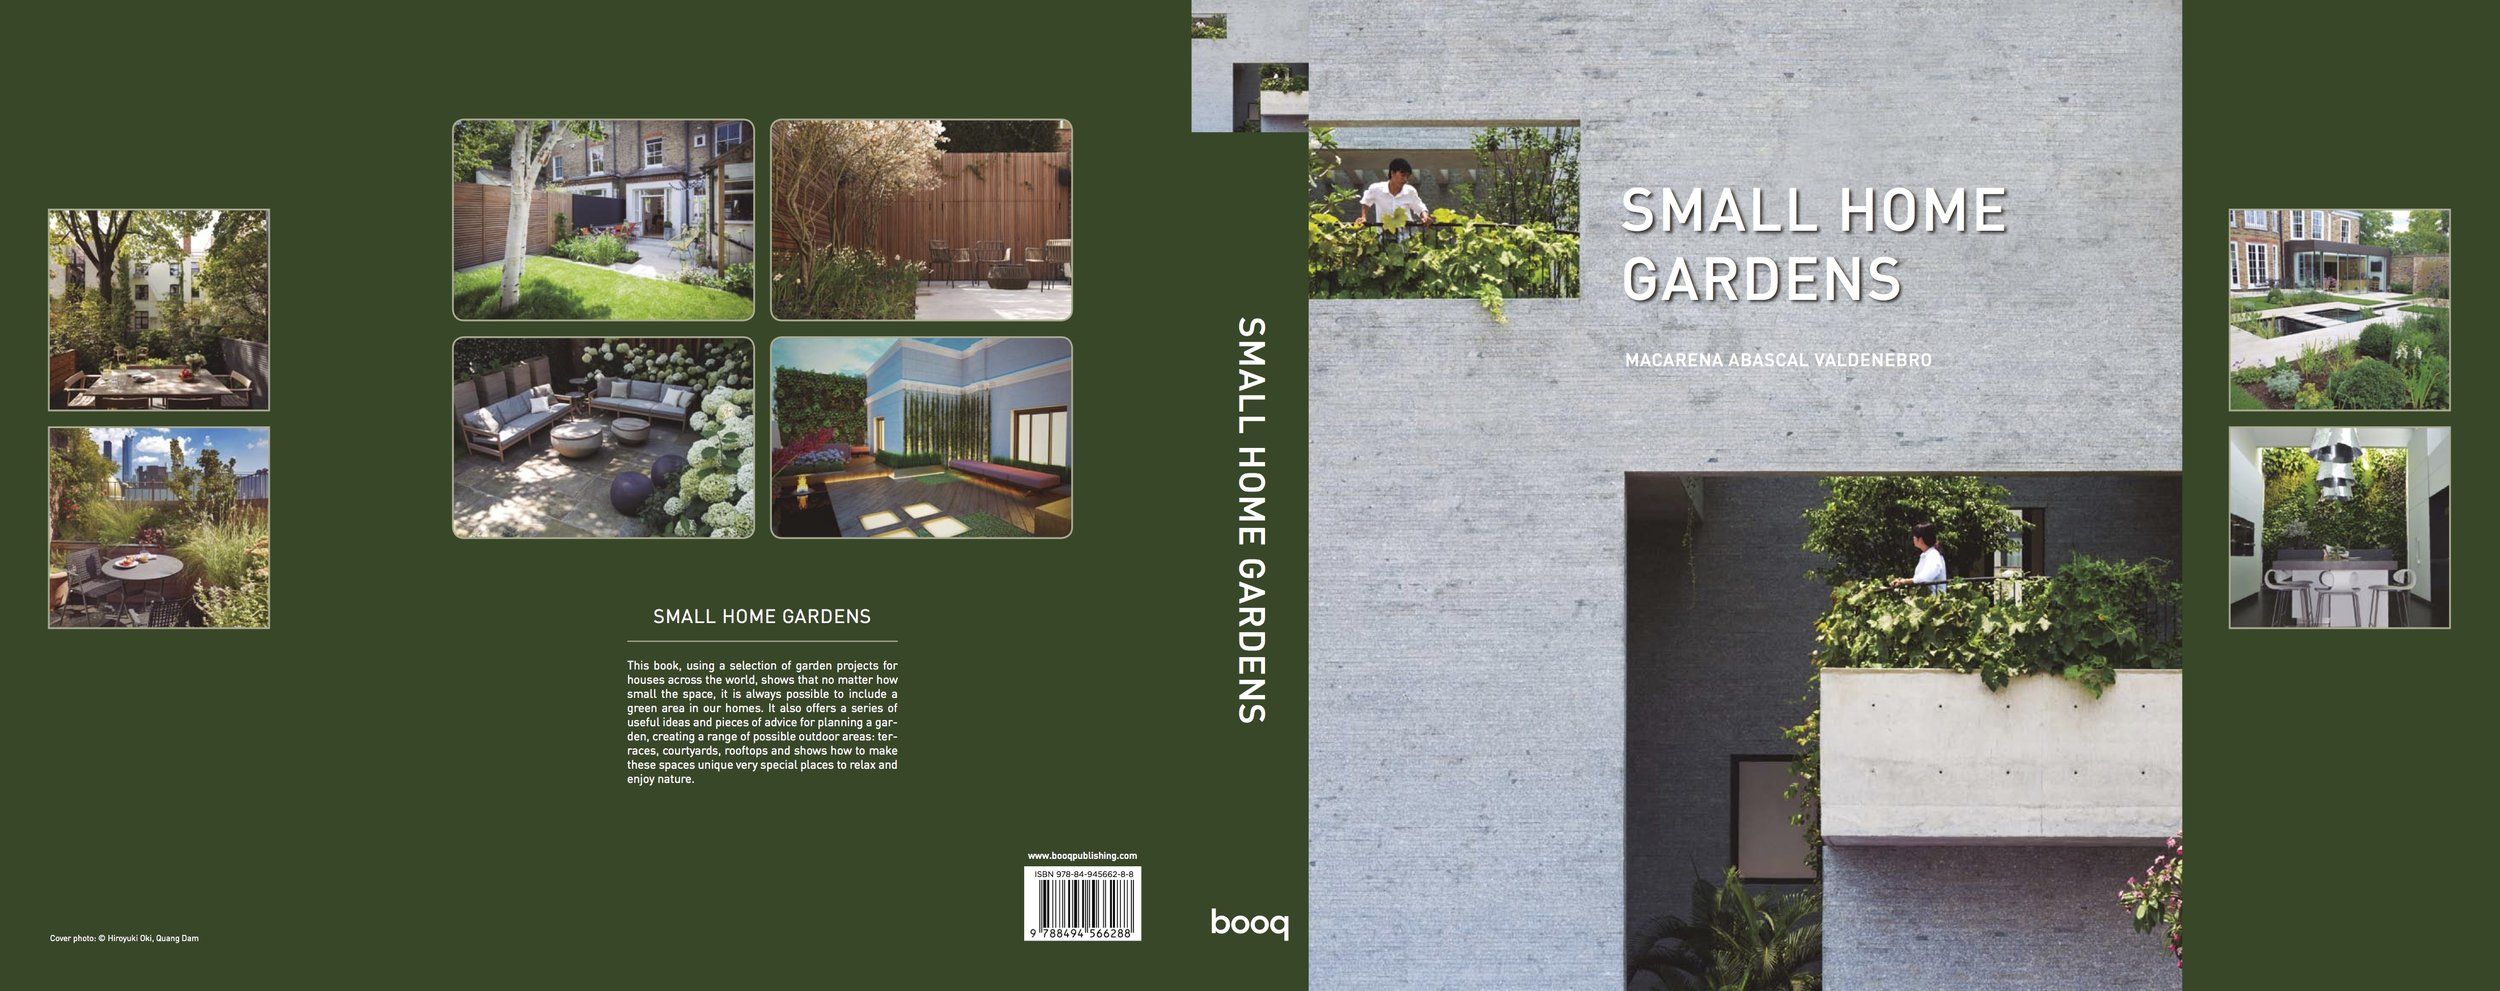 00505_SMALL HOME GARDENS_BOOQ_[en]_jacket_lowres.jpg